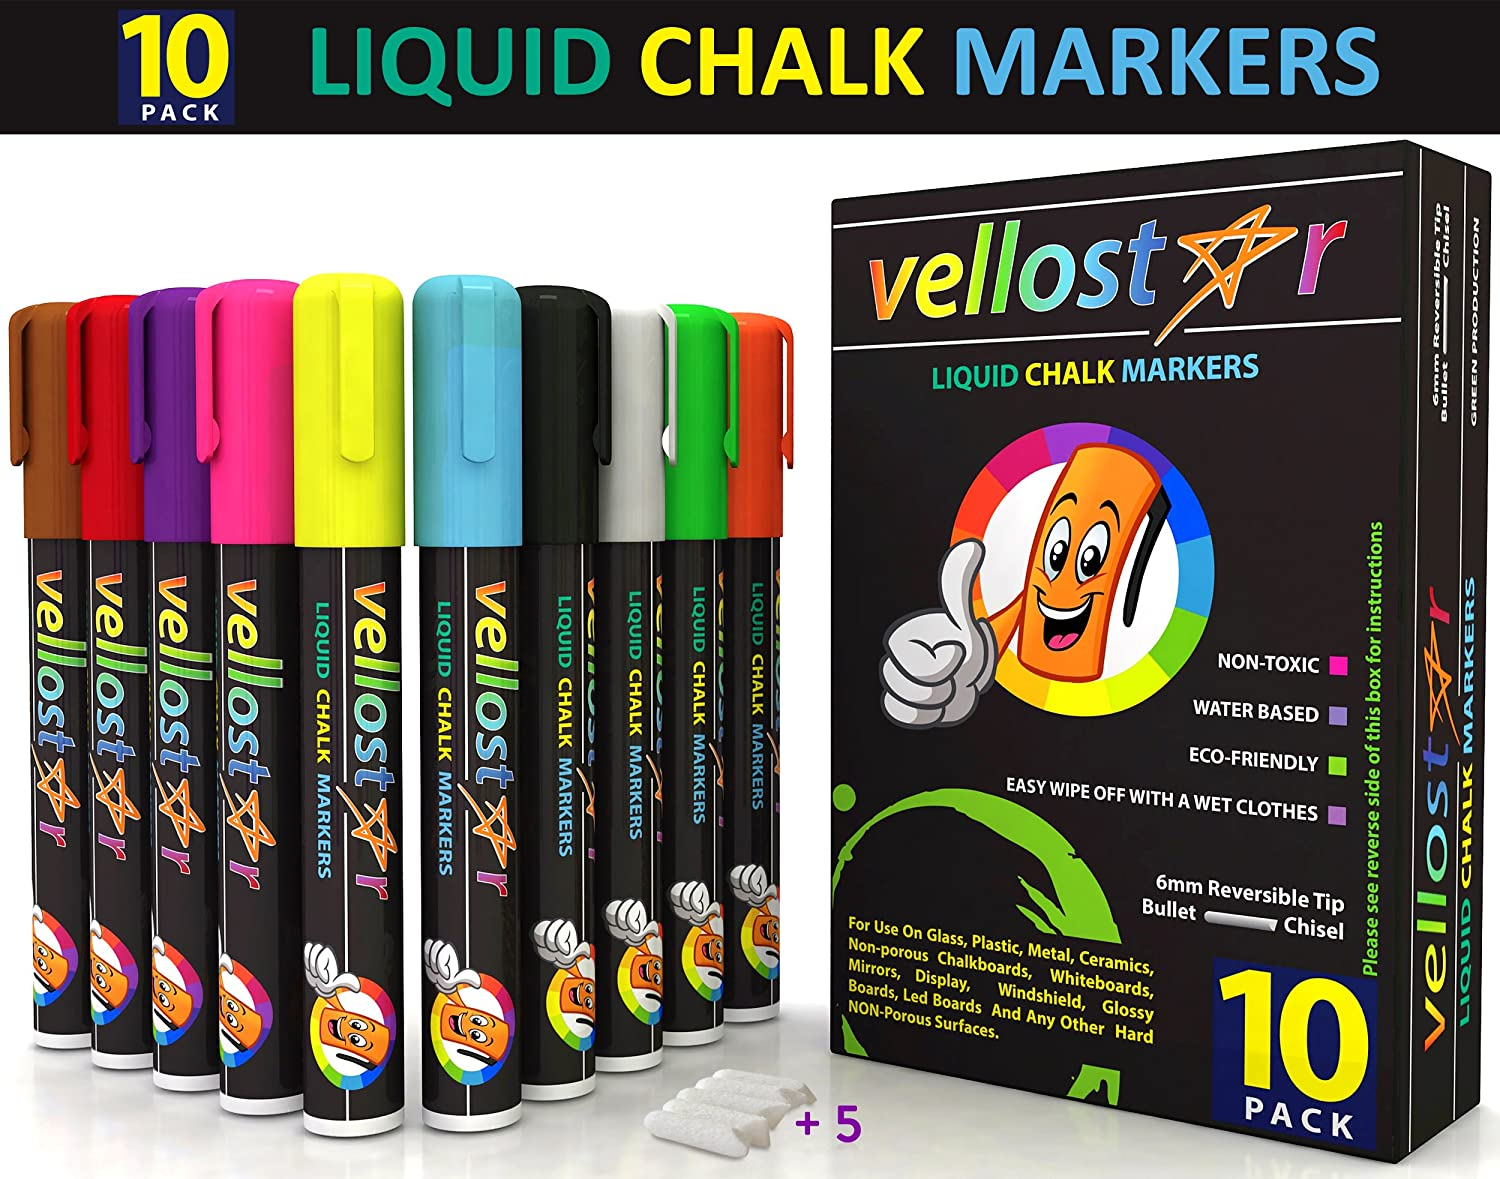 Vellostar Liquid Chalk Markers, Premium Quality, 10-pack, 5 Extra Tips, Child Safe and Non-toxic, 6mm Reversible Tip, Great to Paint on Glass and Non-porous Surfaces, Perfect Gift